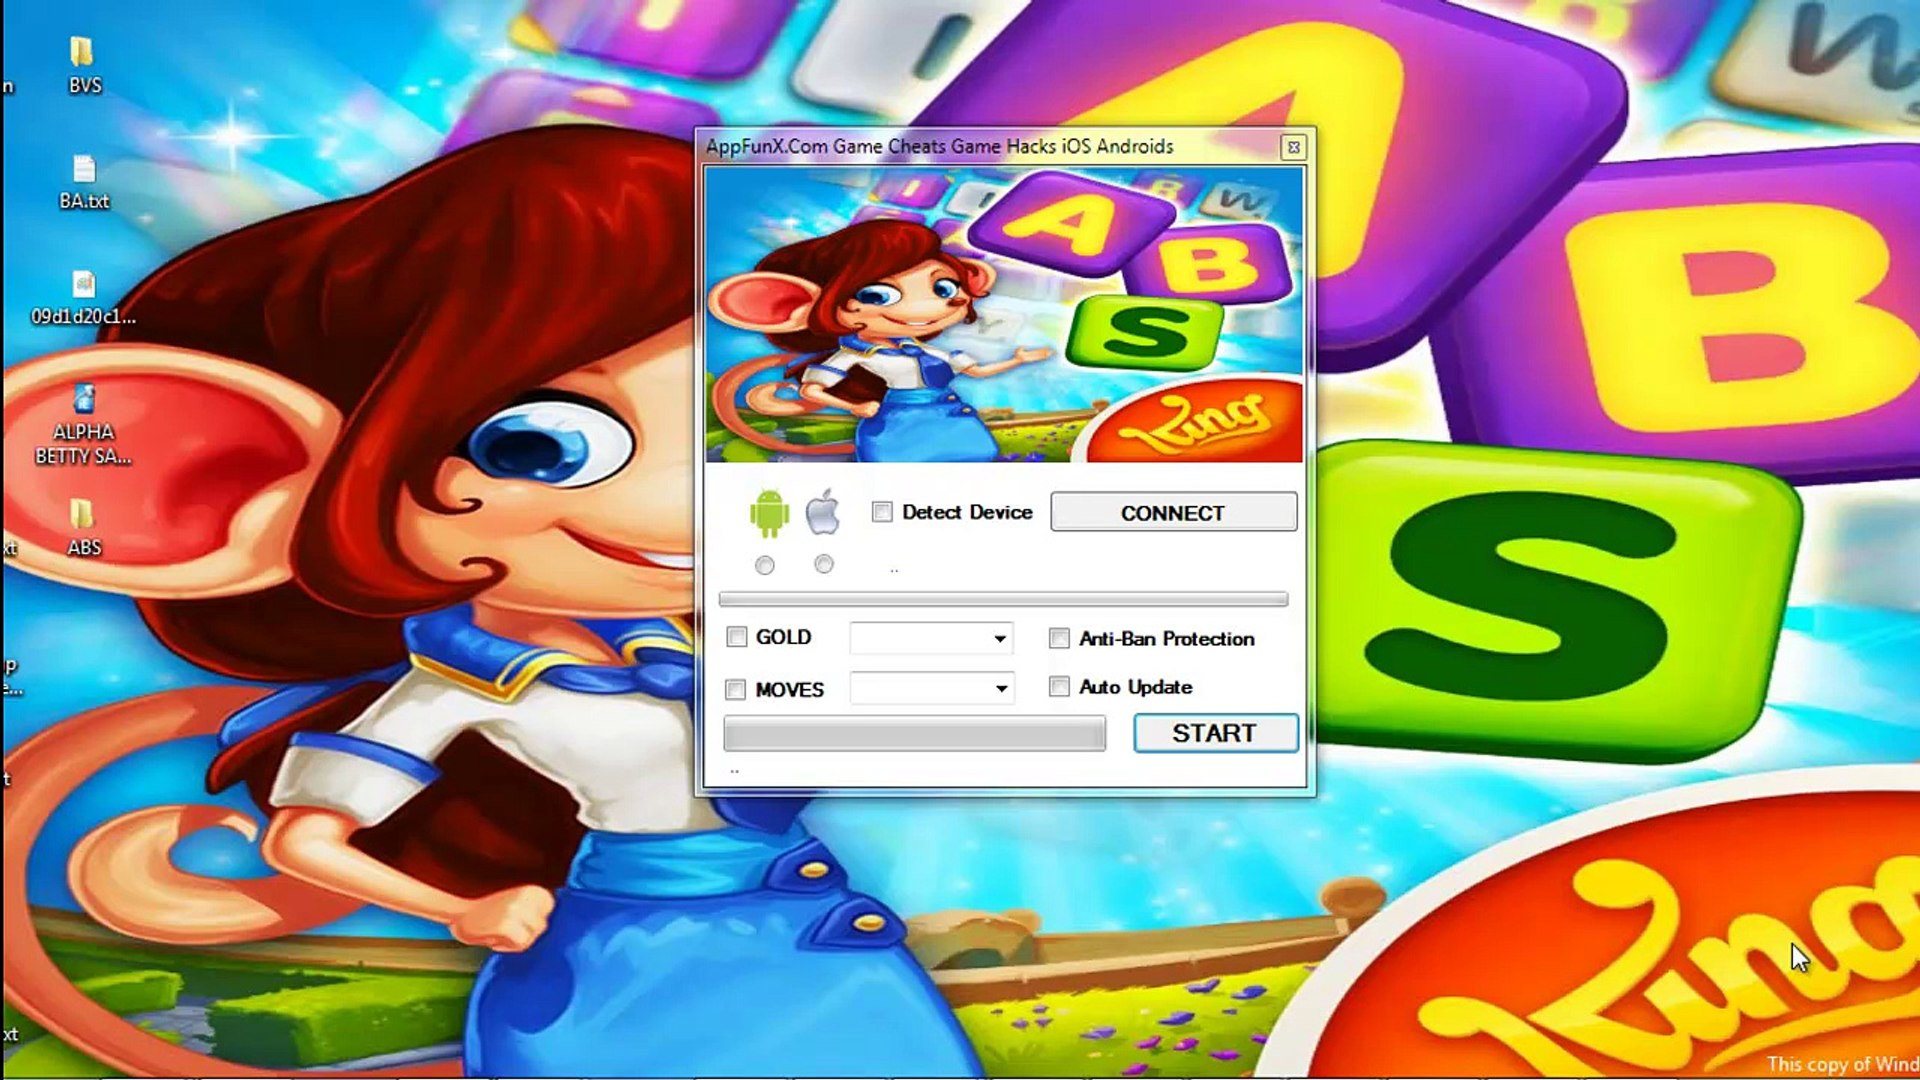 AlphaBetty Saga Hack and Cheats Free Gold Unlimited iOS Android